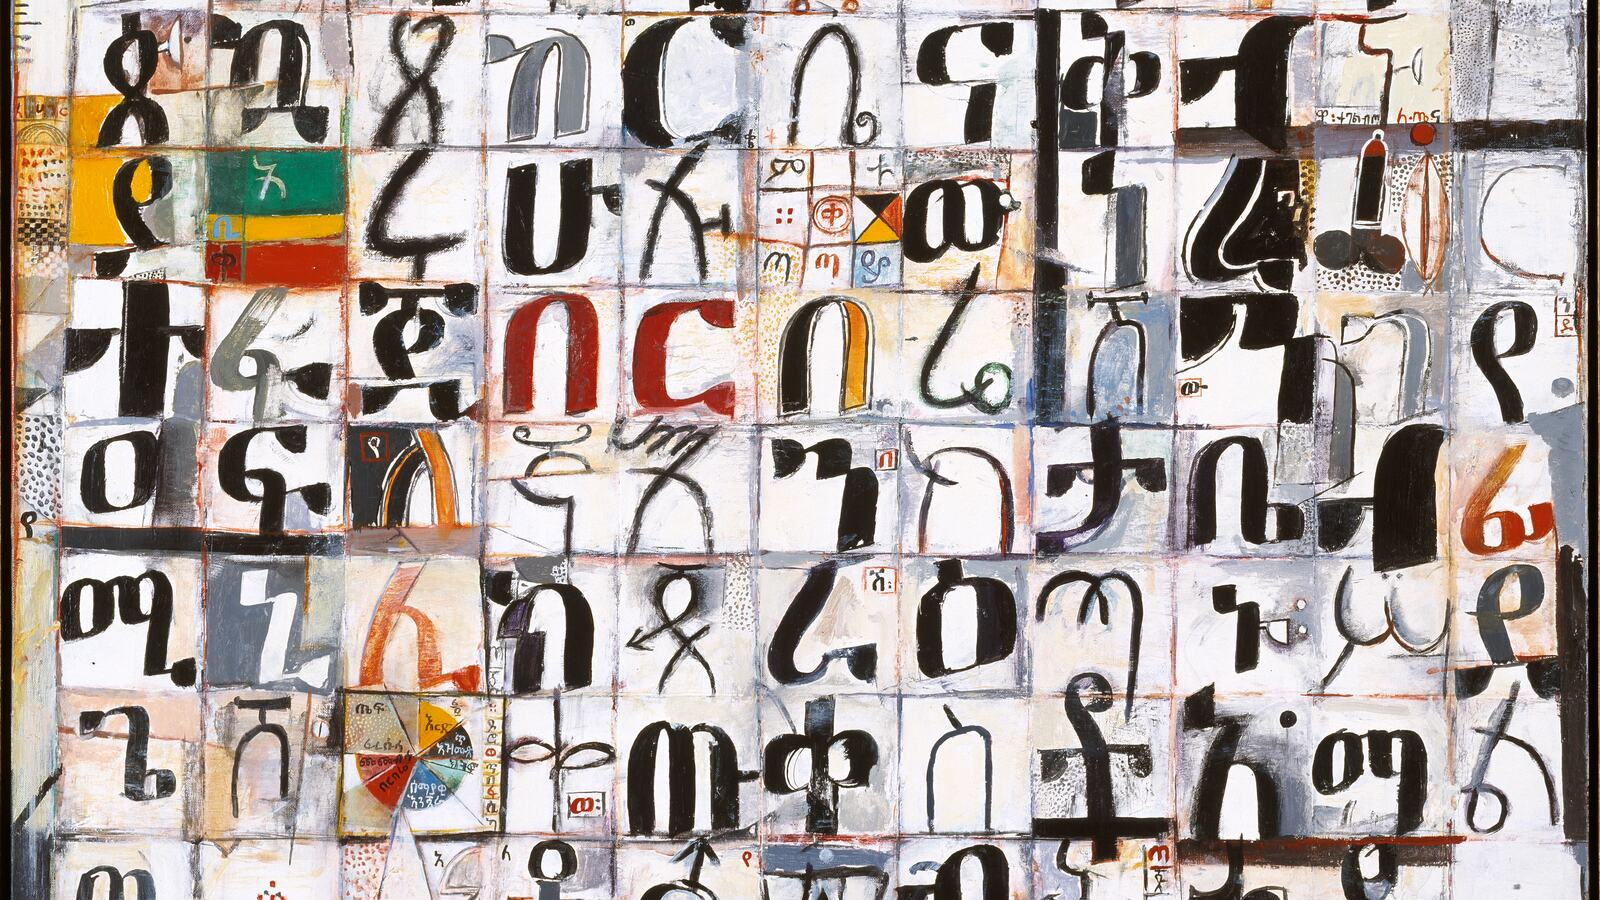 Image of letters